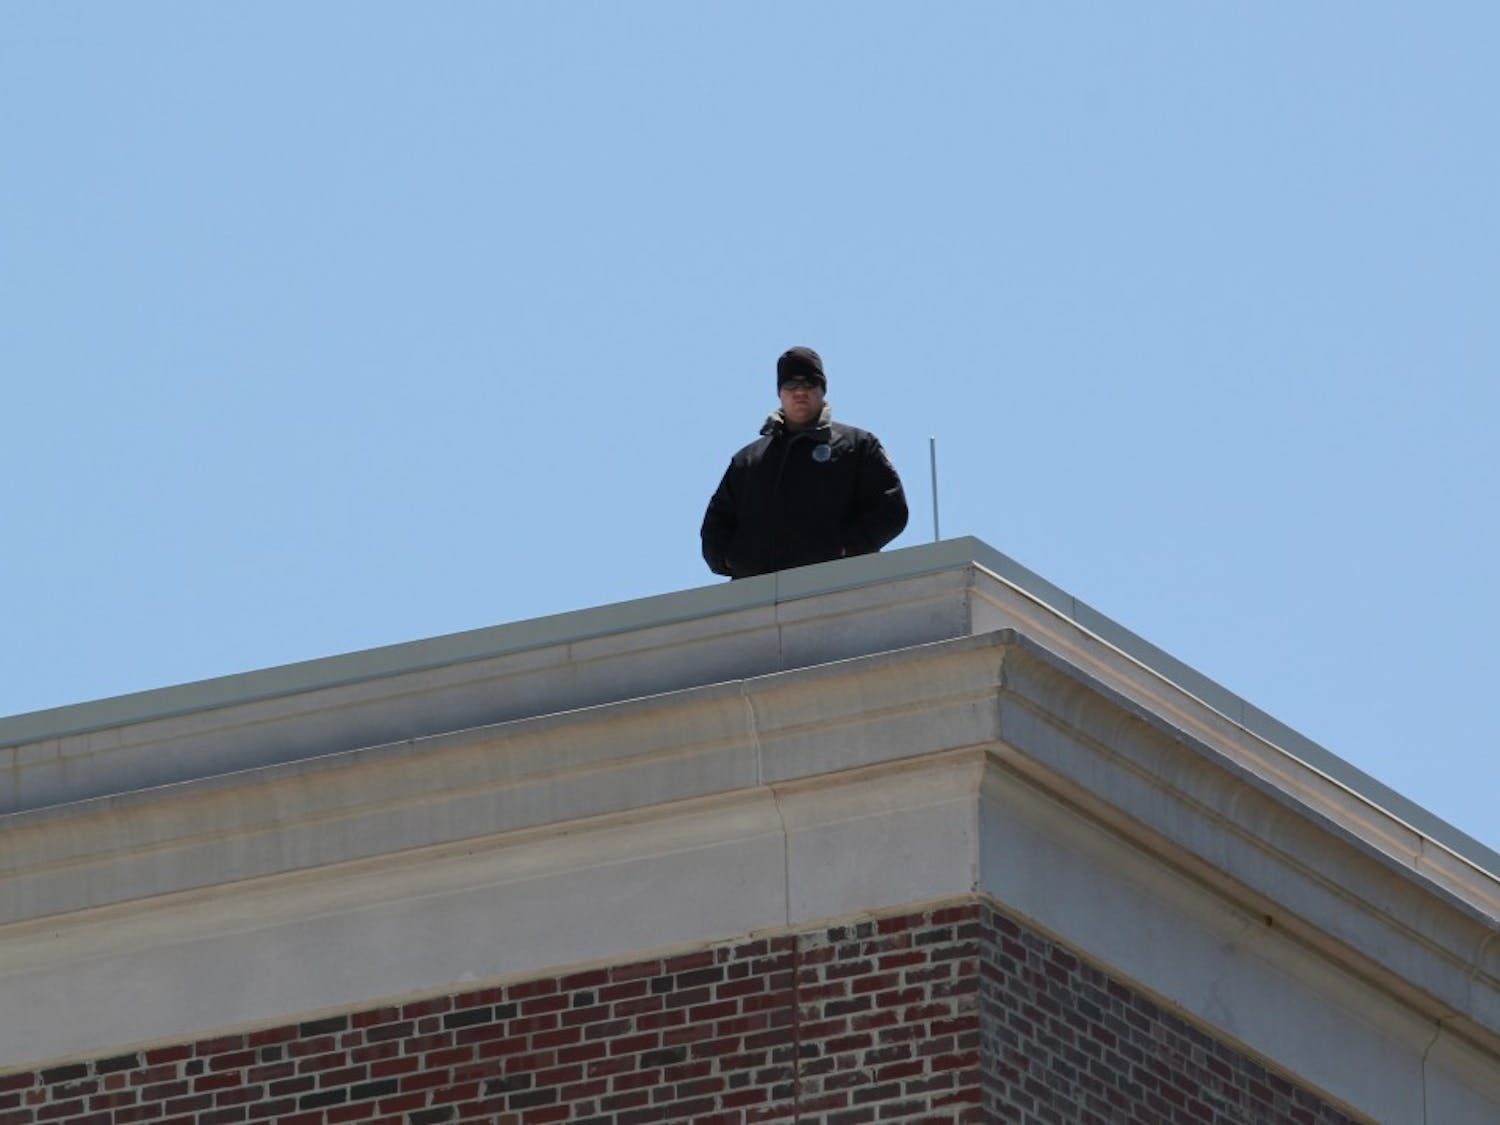 Secret service was on the roof of Memorial Hall.